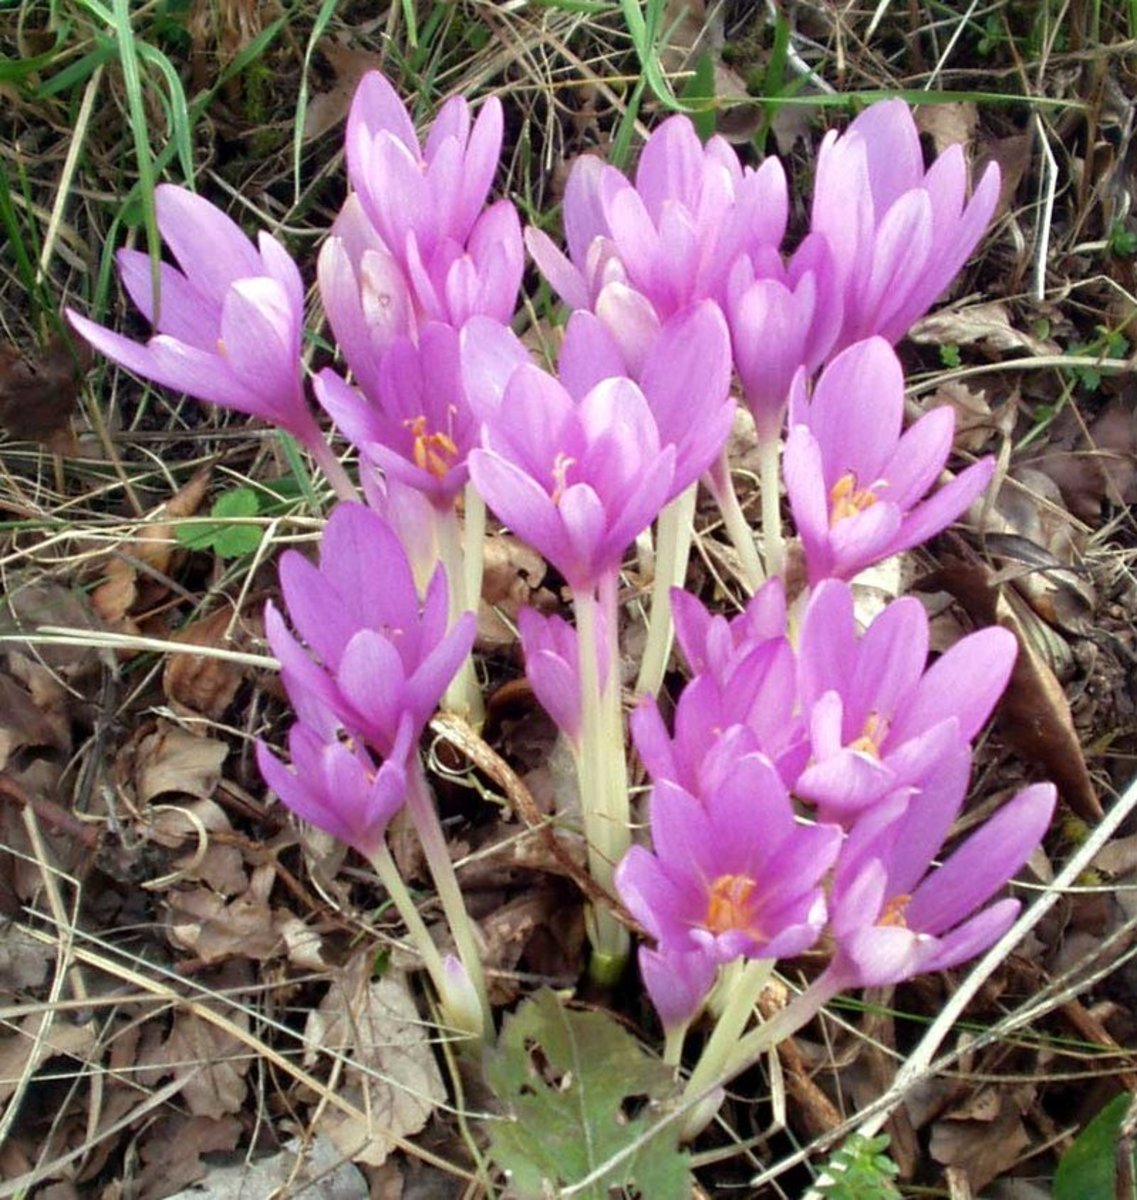 How to Grow Autumn Crocus (Meadow Saffron) for Fall Color